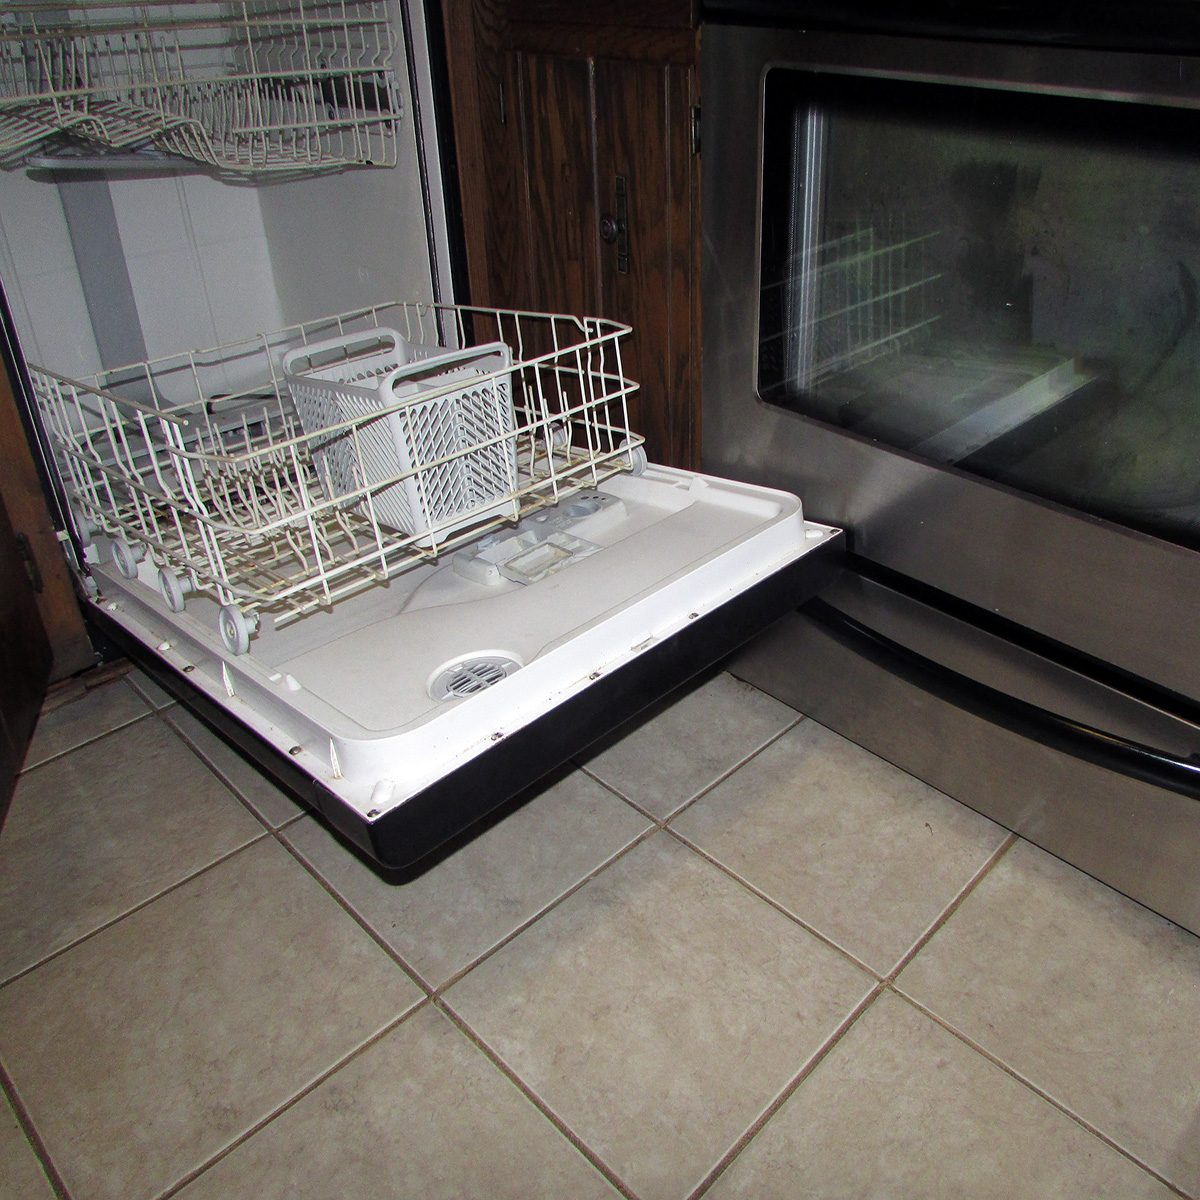 A dishwasher opened and blocking an oven | Construction Pro Tips